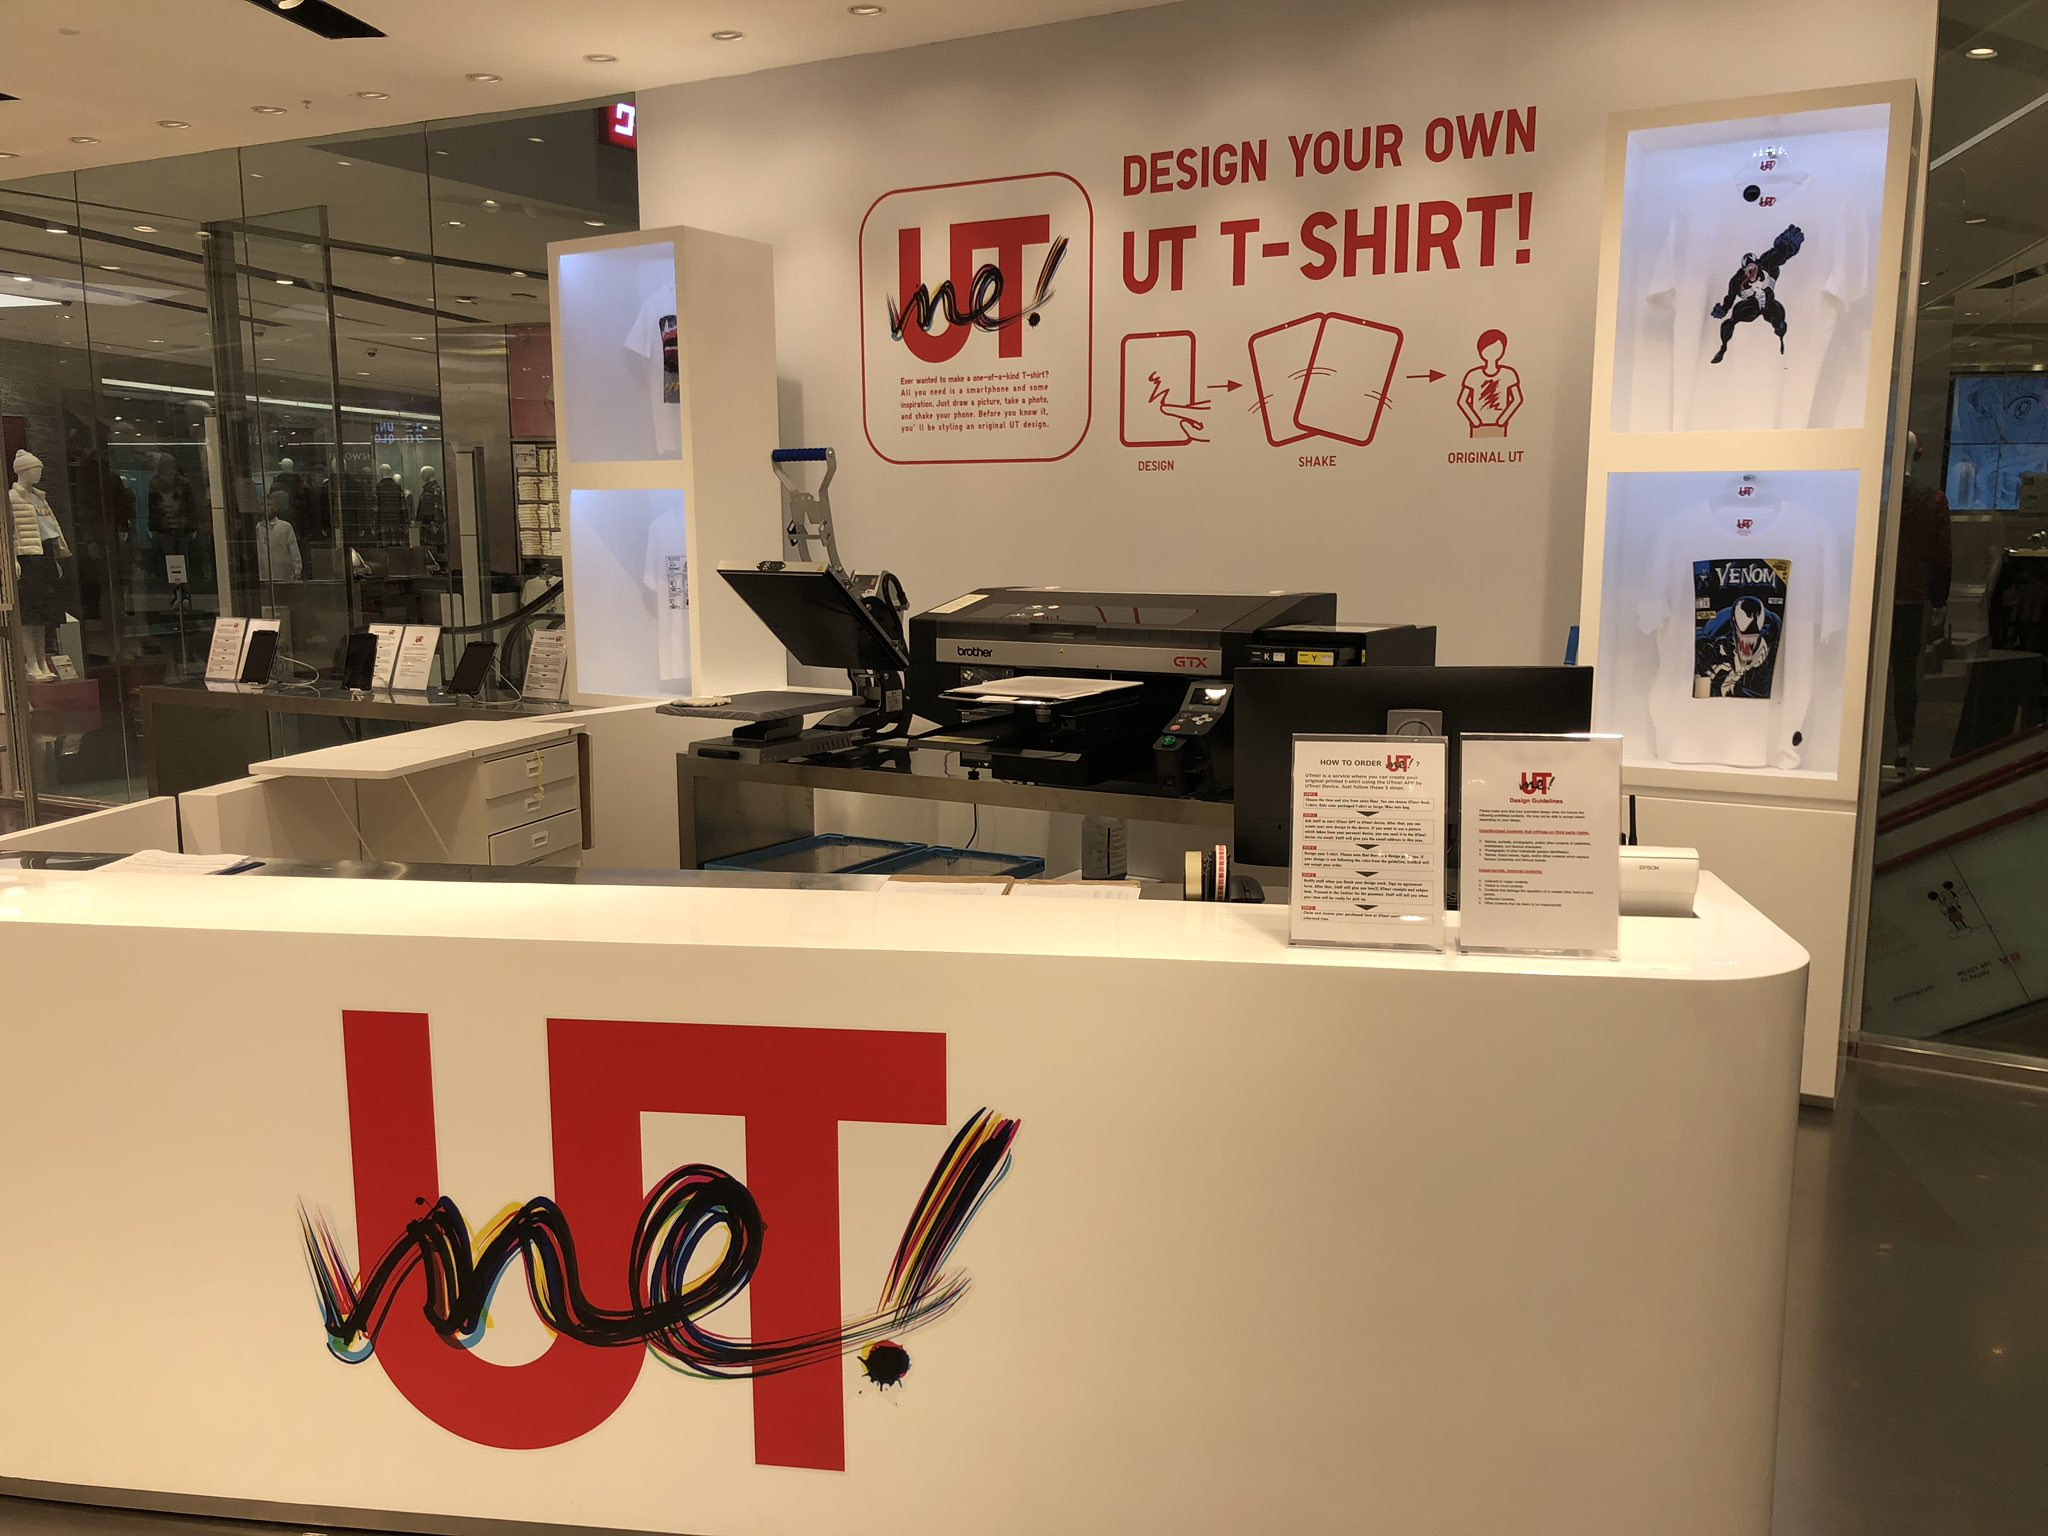 uniqlo, HEADS UP: Uniqlo's Design Your Own T-shirt service opens today